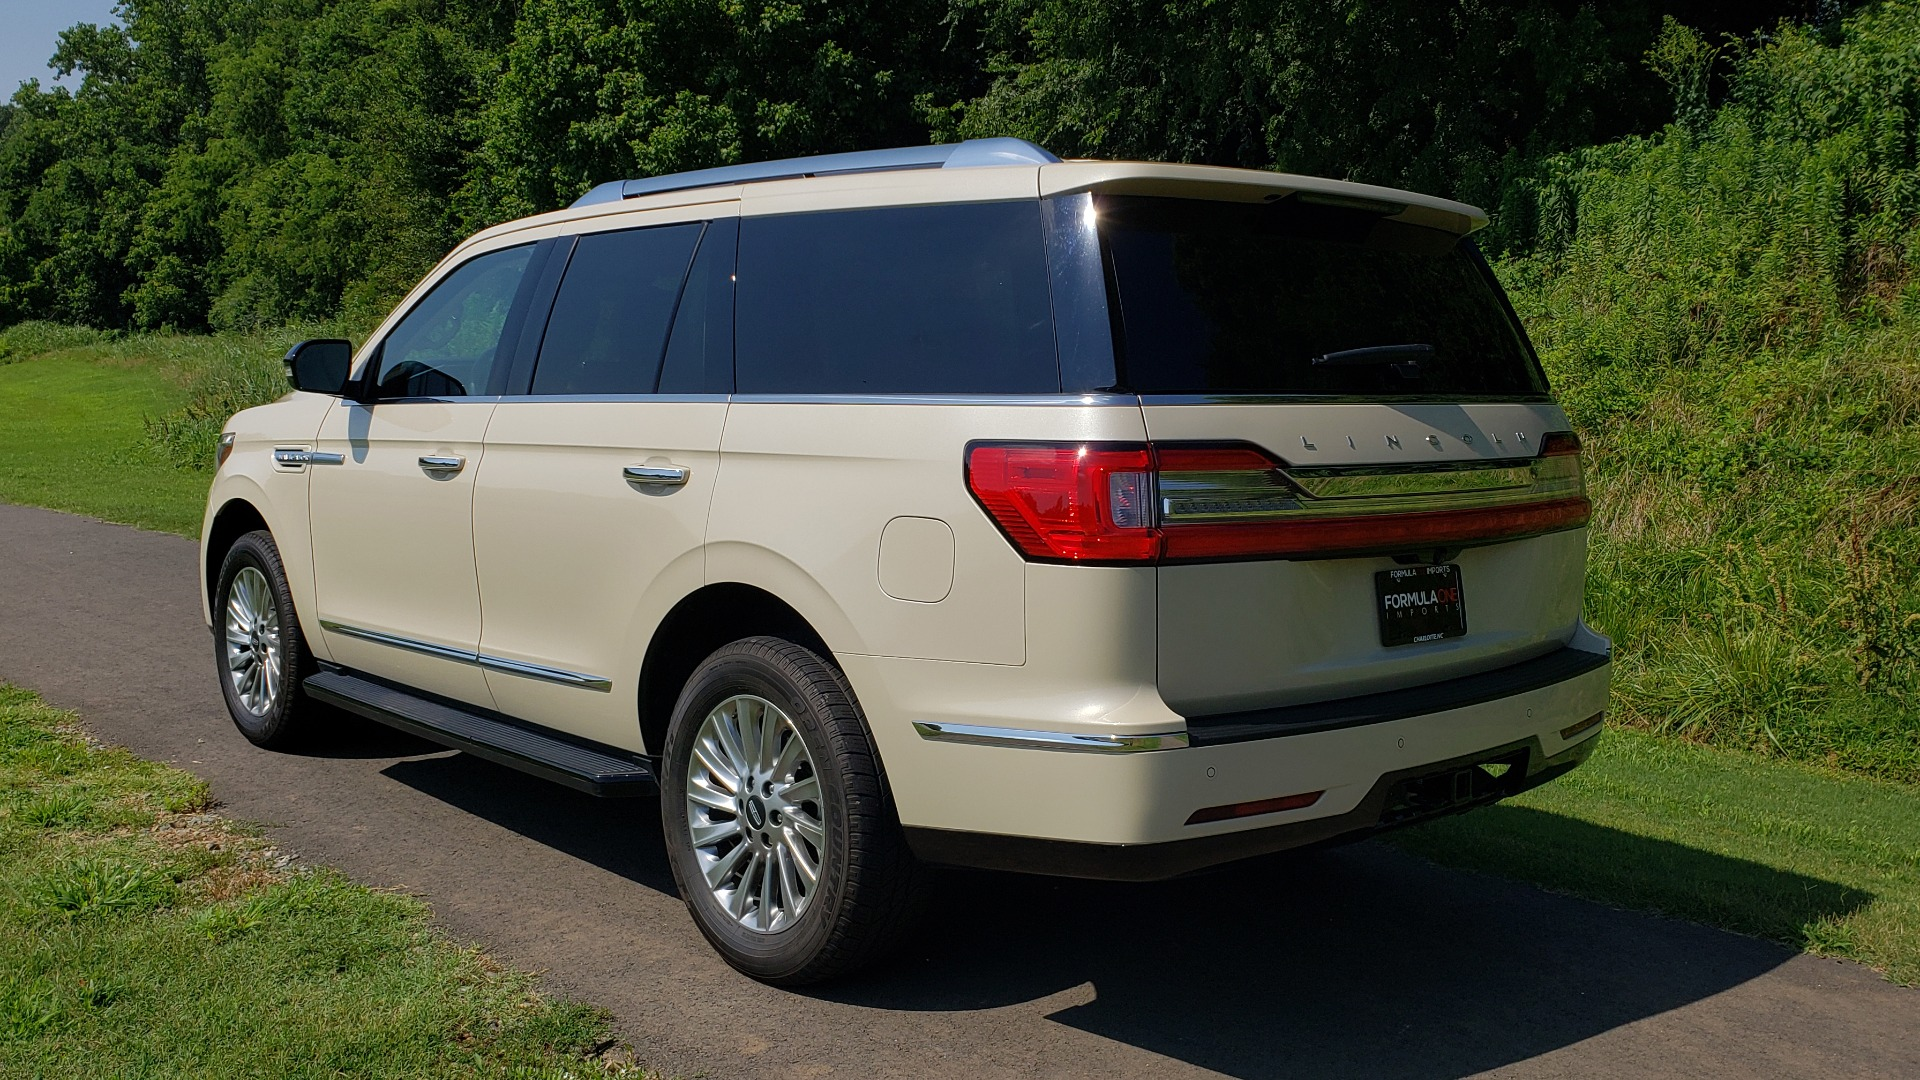 Used 2018 Lincoln NAVIGATOR PREMIERE 4X2 / TWIN-TURBO V6 / NAV / 3-ROW / REARVIEW for sale Sold at Formula Imports in Charlotte NC 28227 4